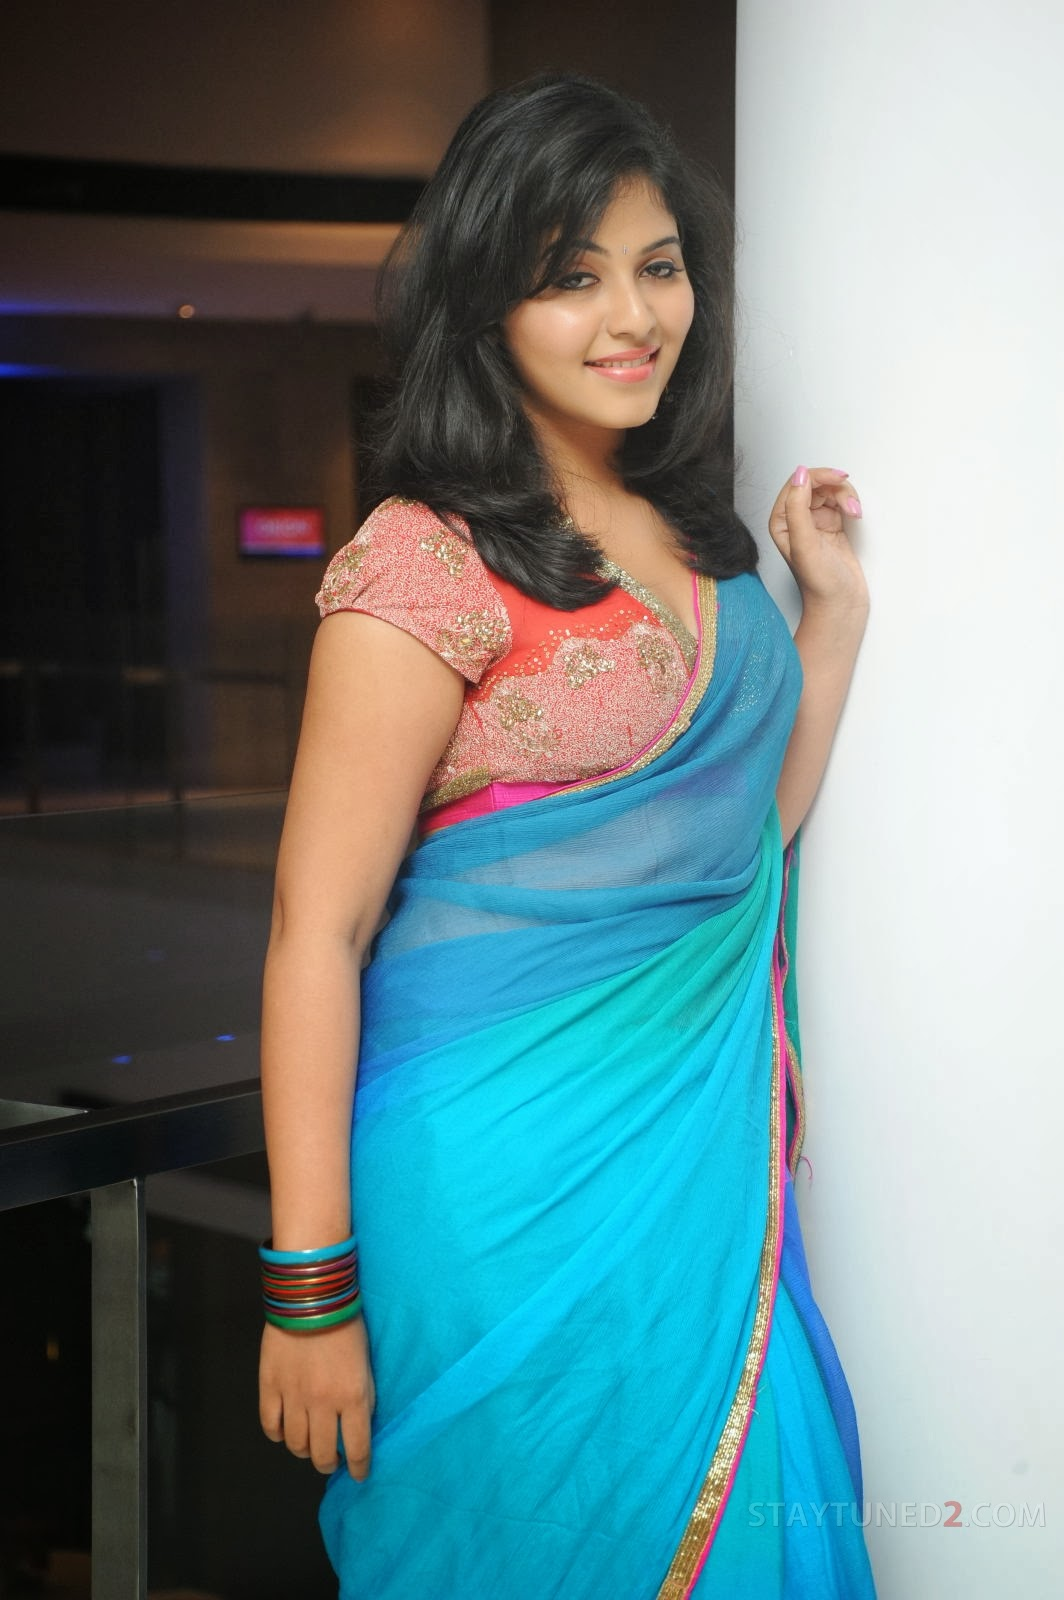 Anjali sexy photos in saree